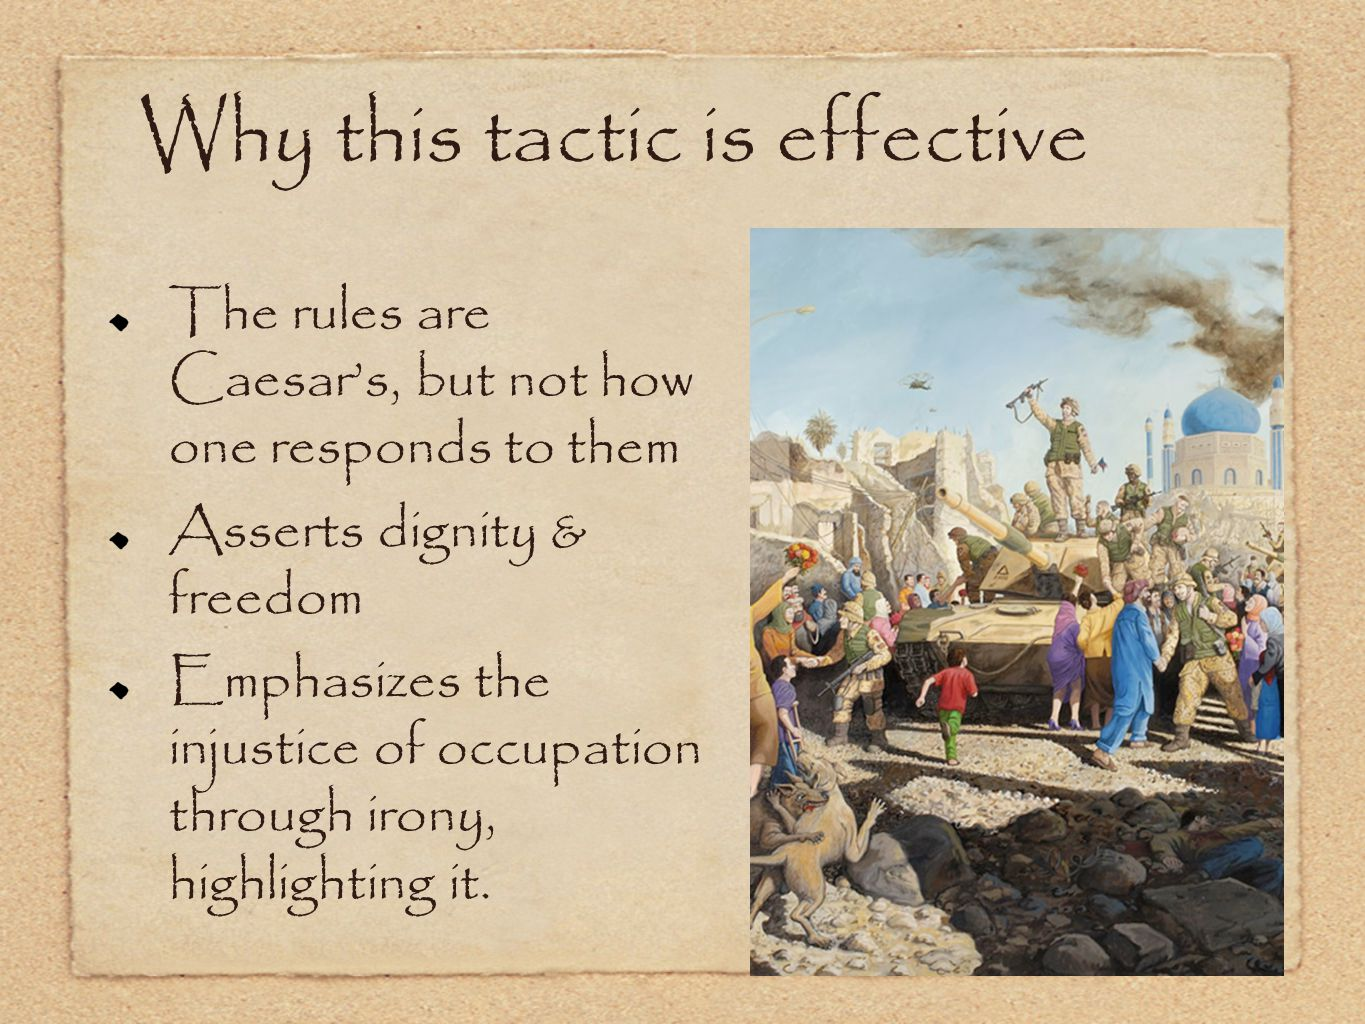 Why this tactic is effective The rules are Caesar's, but not how one responds to them Asserts dignity & freedom Emphasizes the injustice of occupation through irony, highlighting it.